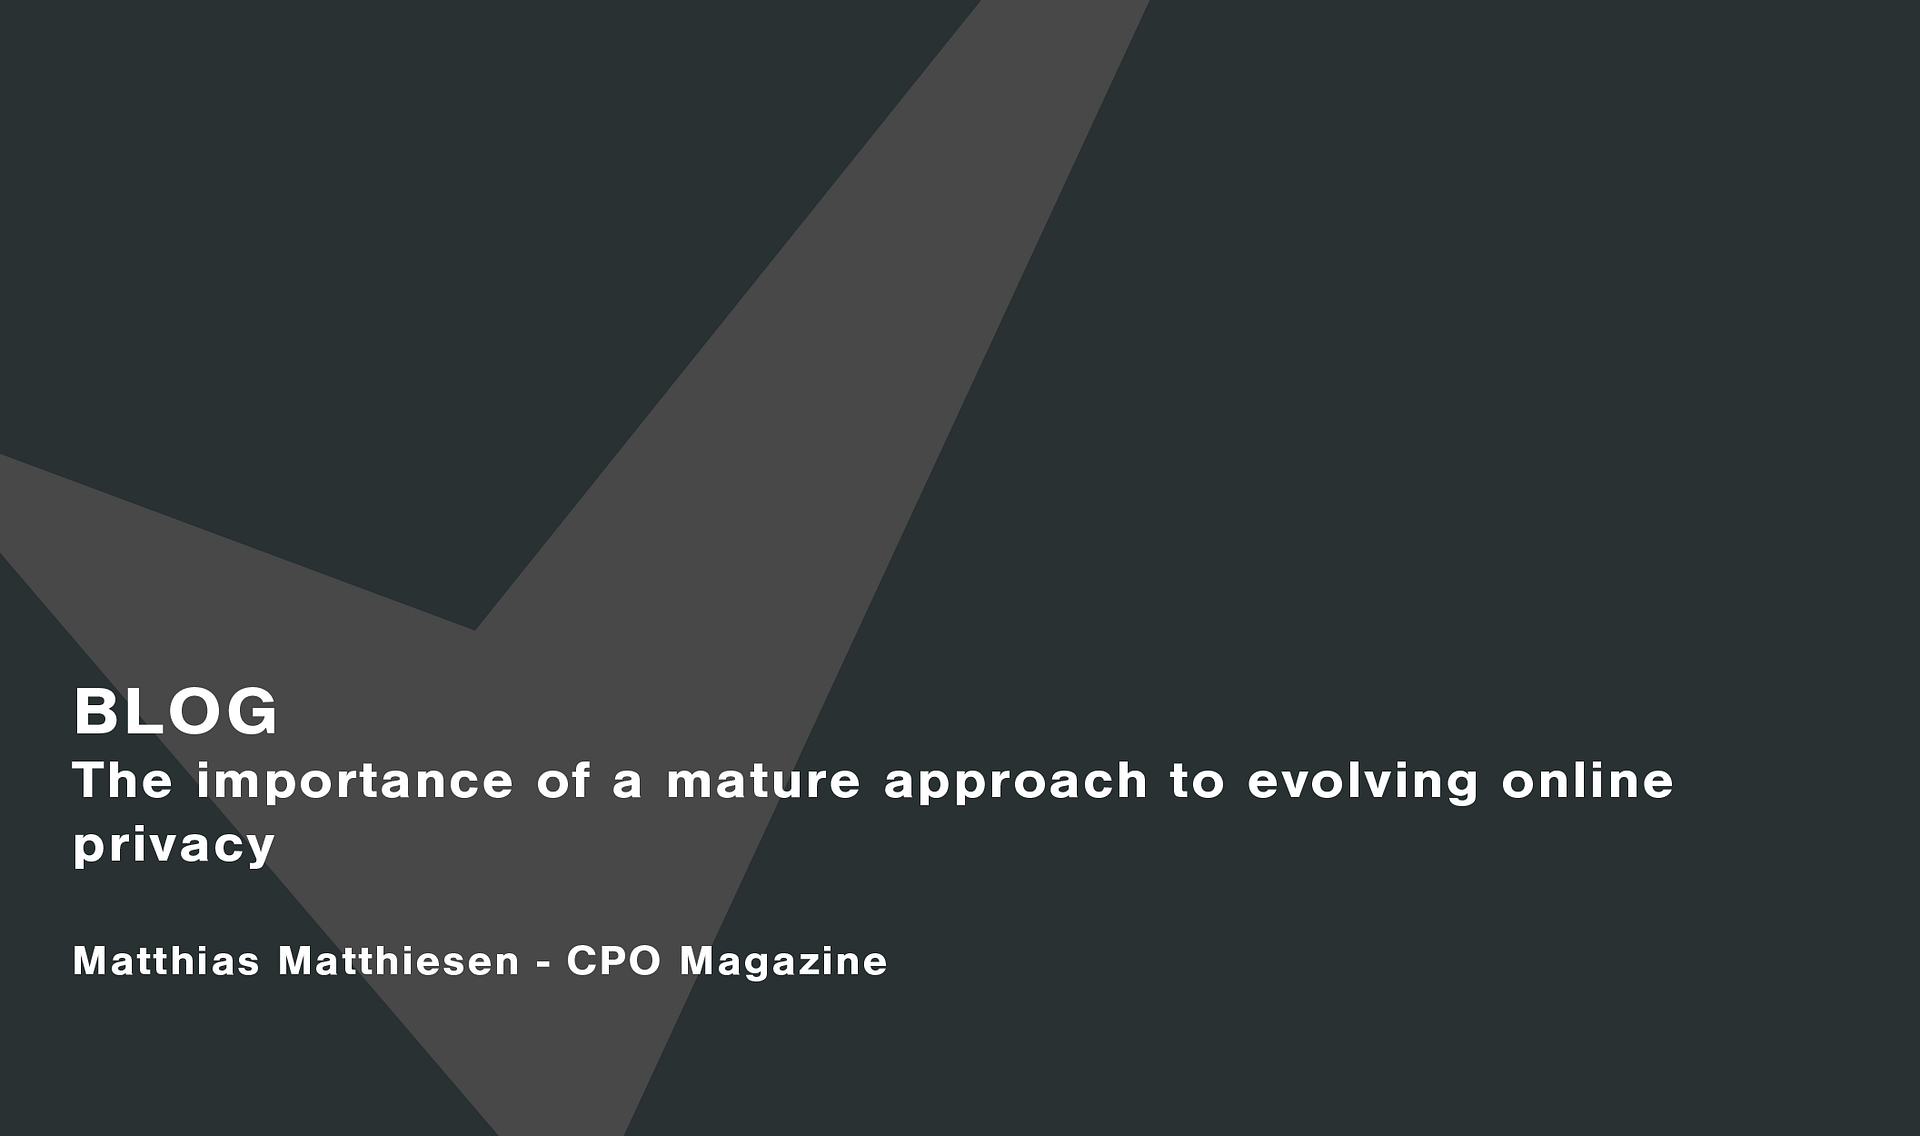 The importance of a mature approach to evolving online privacy Cassie personal information & consent management